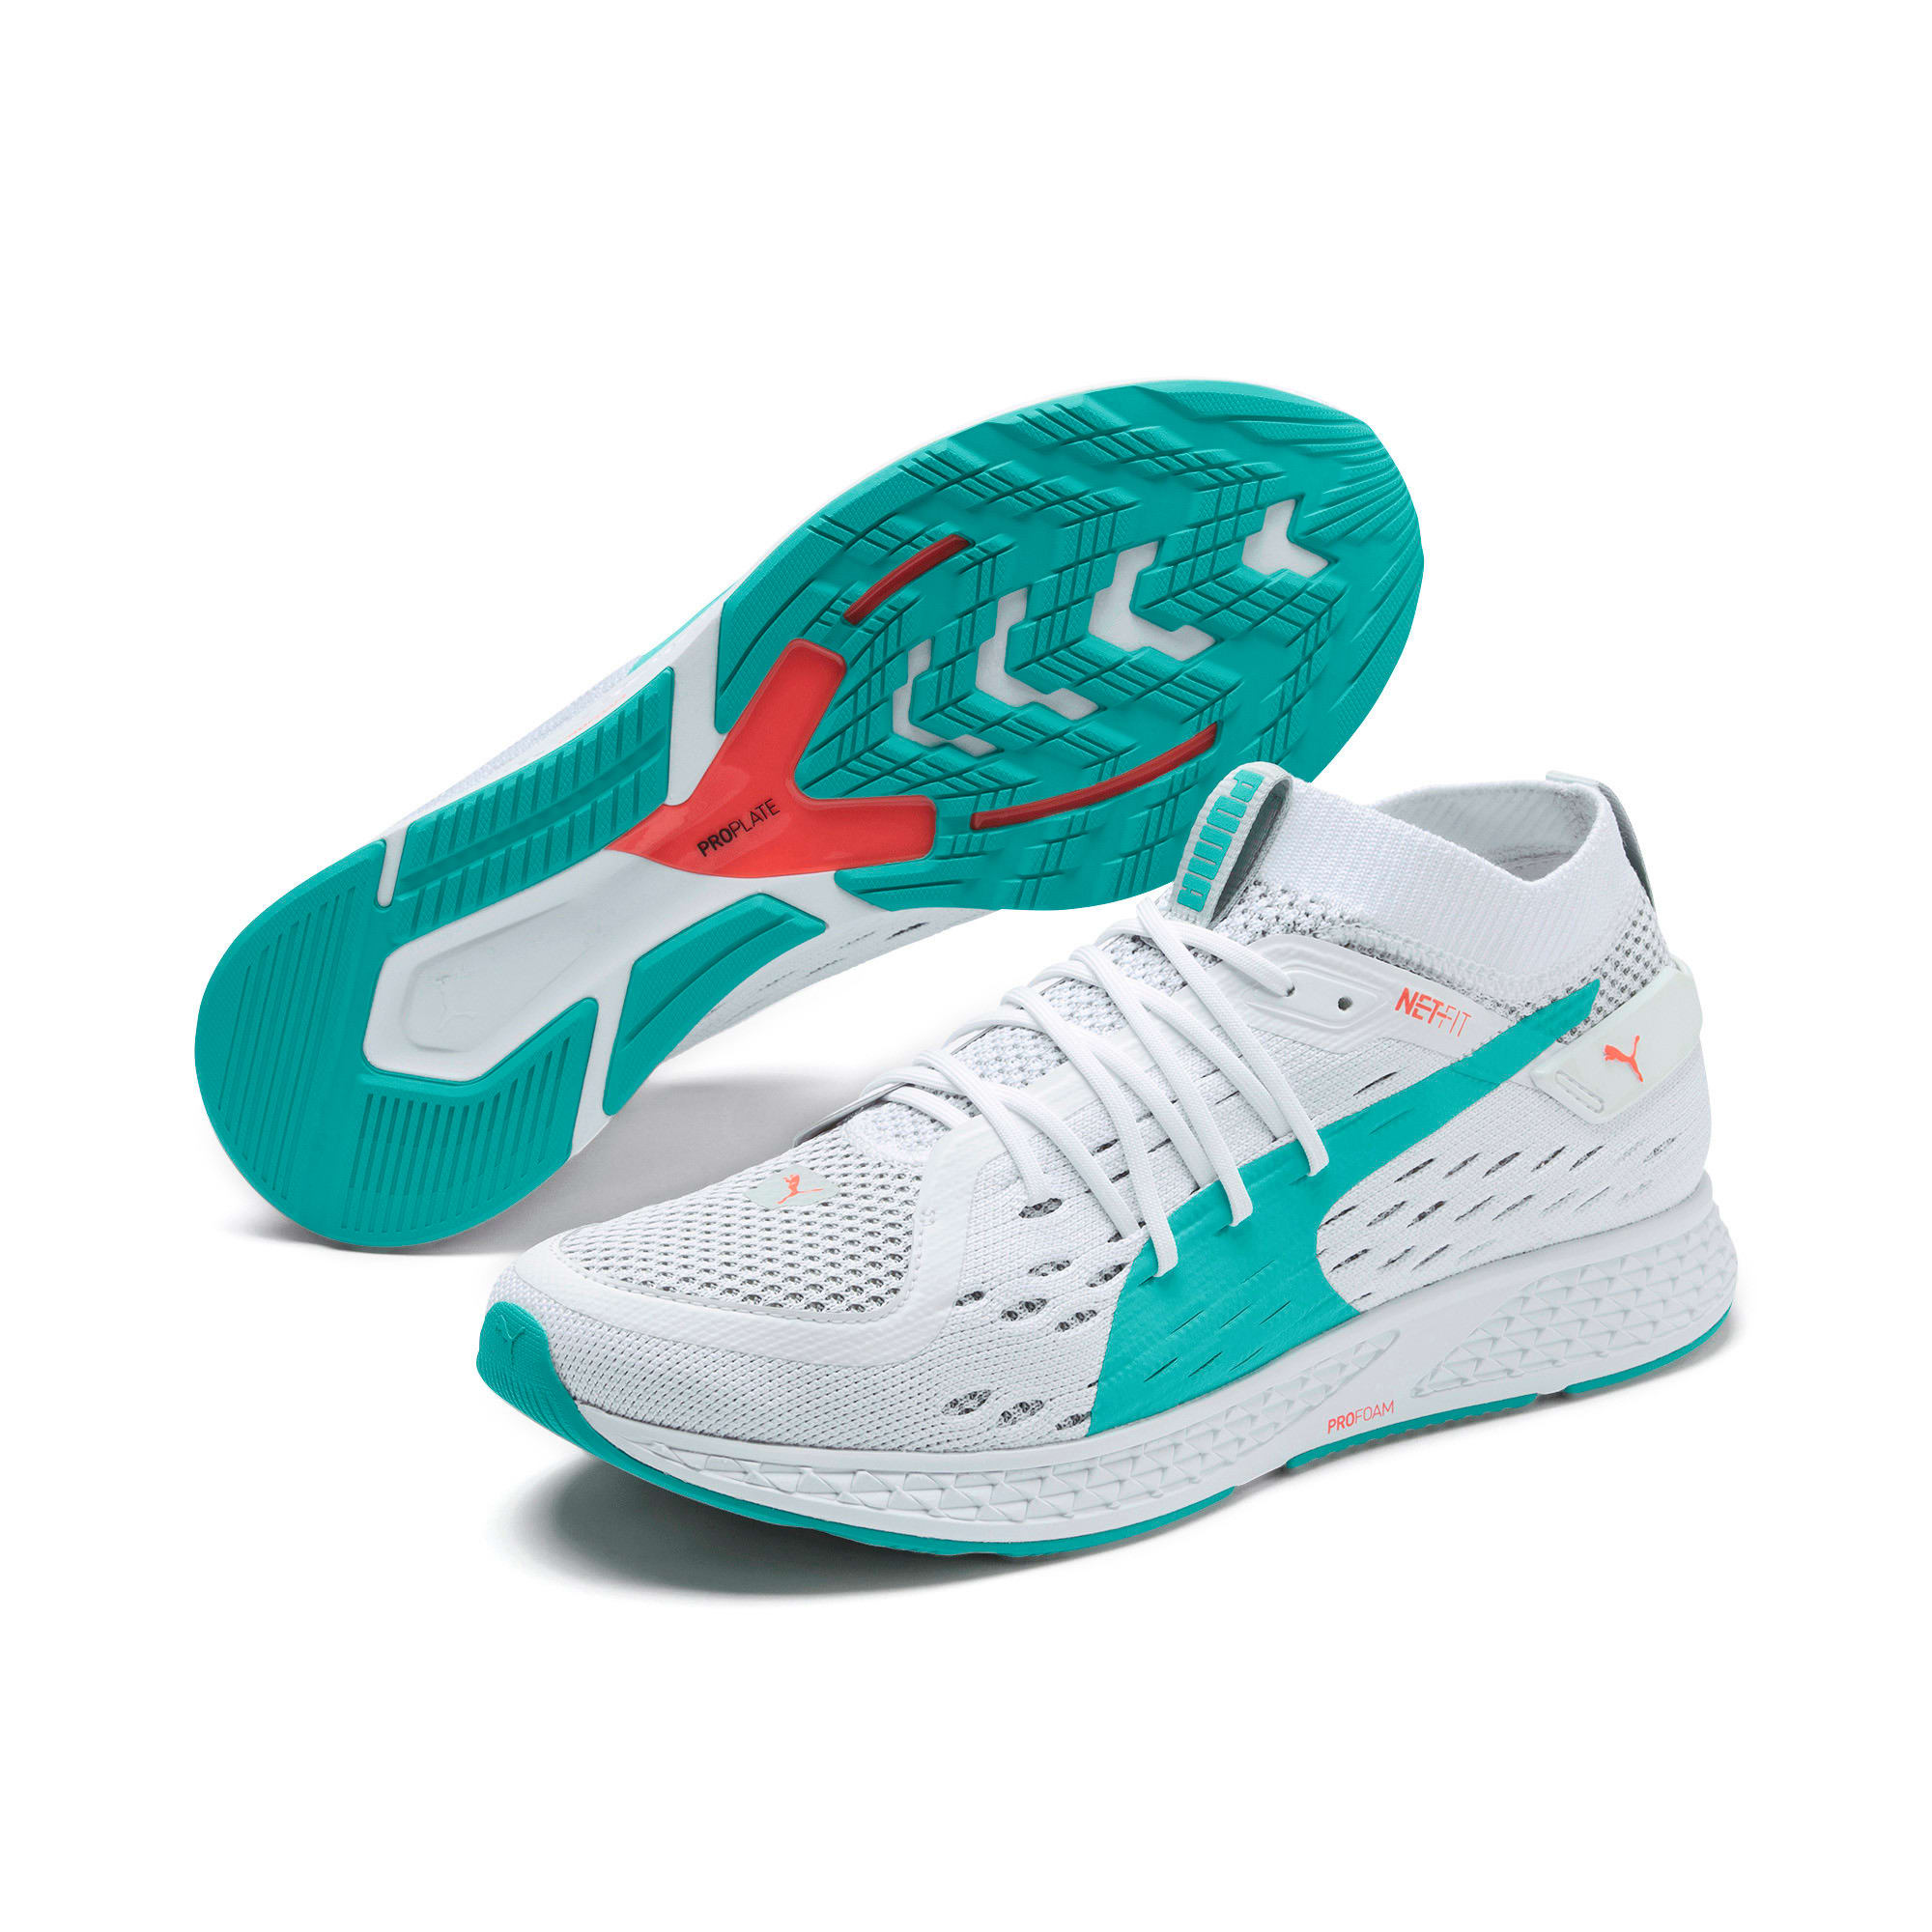 Thumbnail 2 of SPEED 500 Men's Running Shoes, White-Turquoise-Nrgy Red, medium